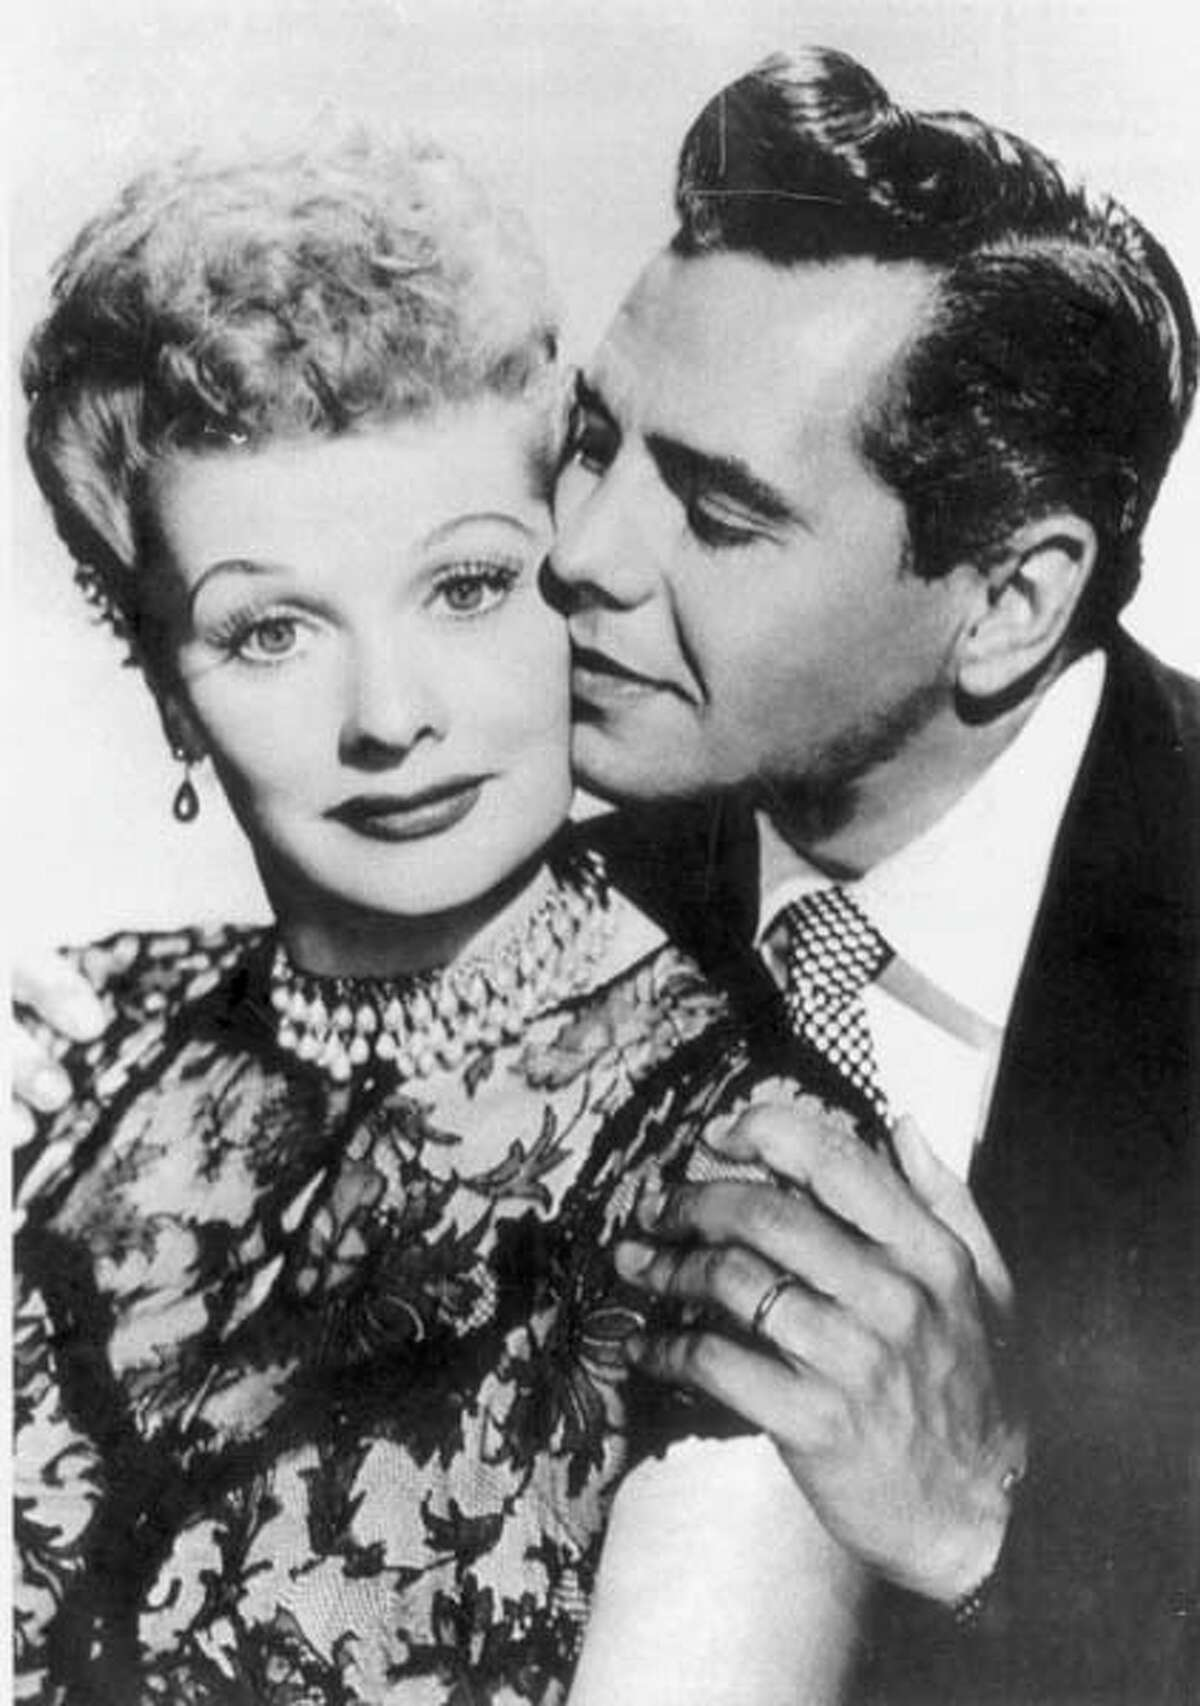 Wedding bells Well, probably not too many bells, considering that Lucille Ball and Desi Arnaz eloped on Nov. 30, 1940.